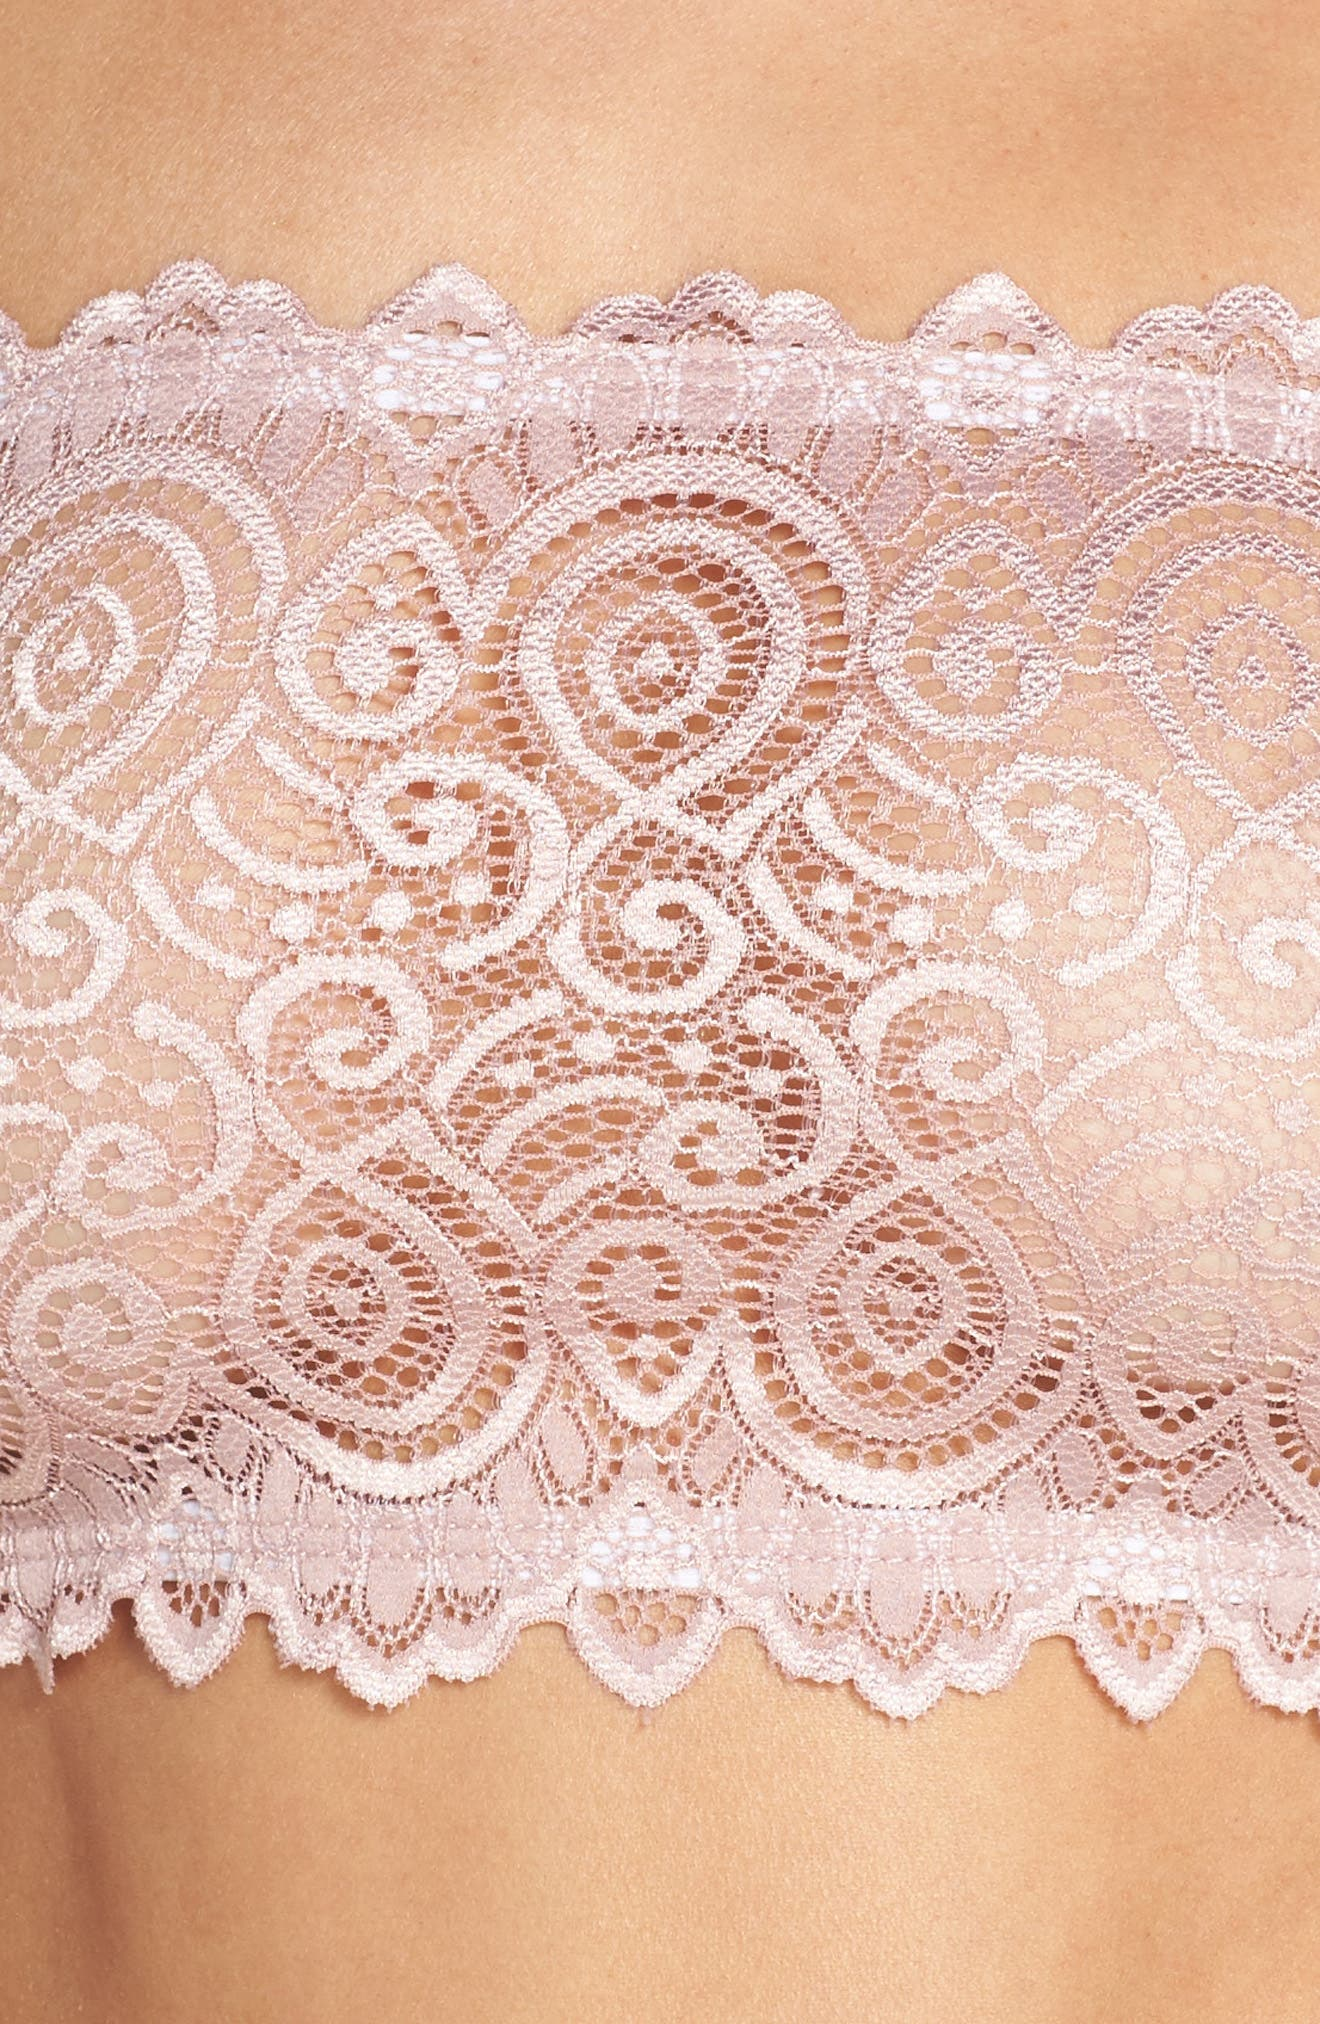 Intimately FP Lace Reversible Seamless Bandeau,                             Alternate thumbnail 48, color,